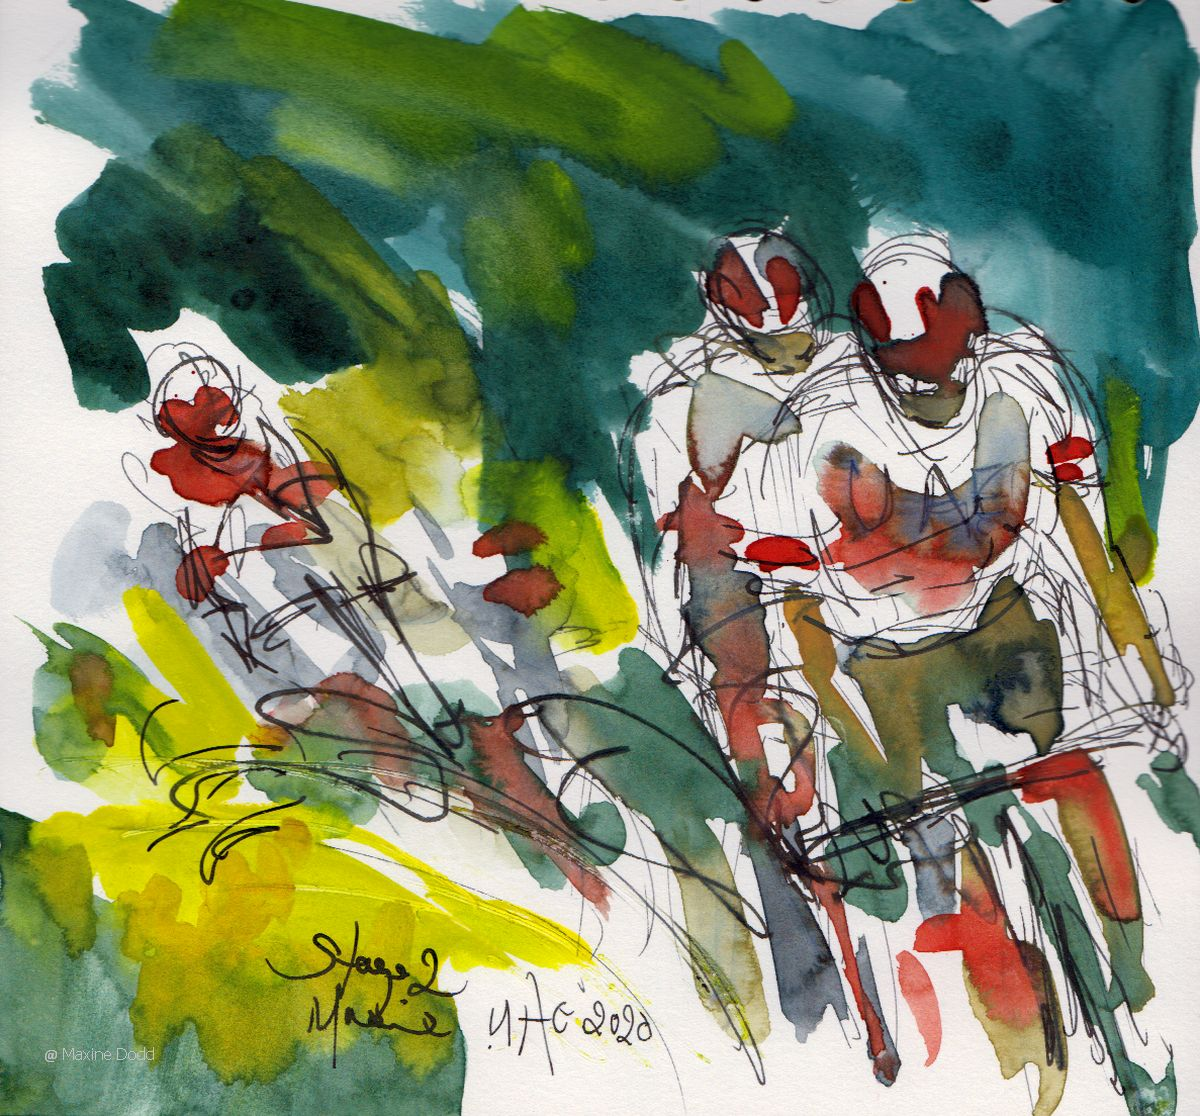 Tour de France 2020 - Stage 2: Team UAE, watercolour, pen and ink by Maxine Dodd